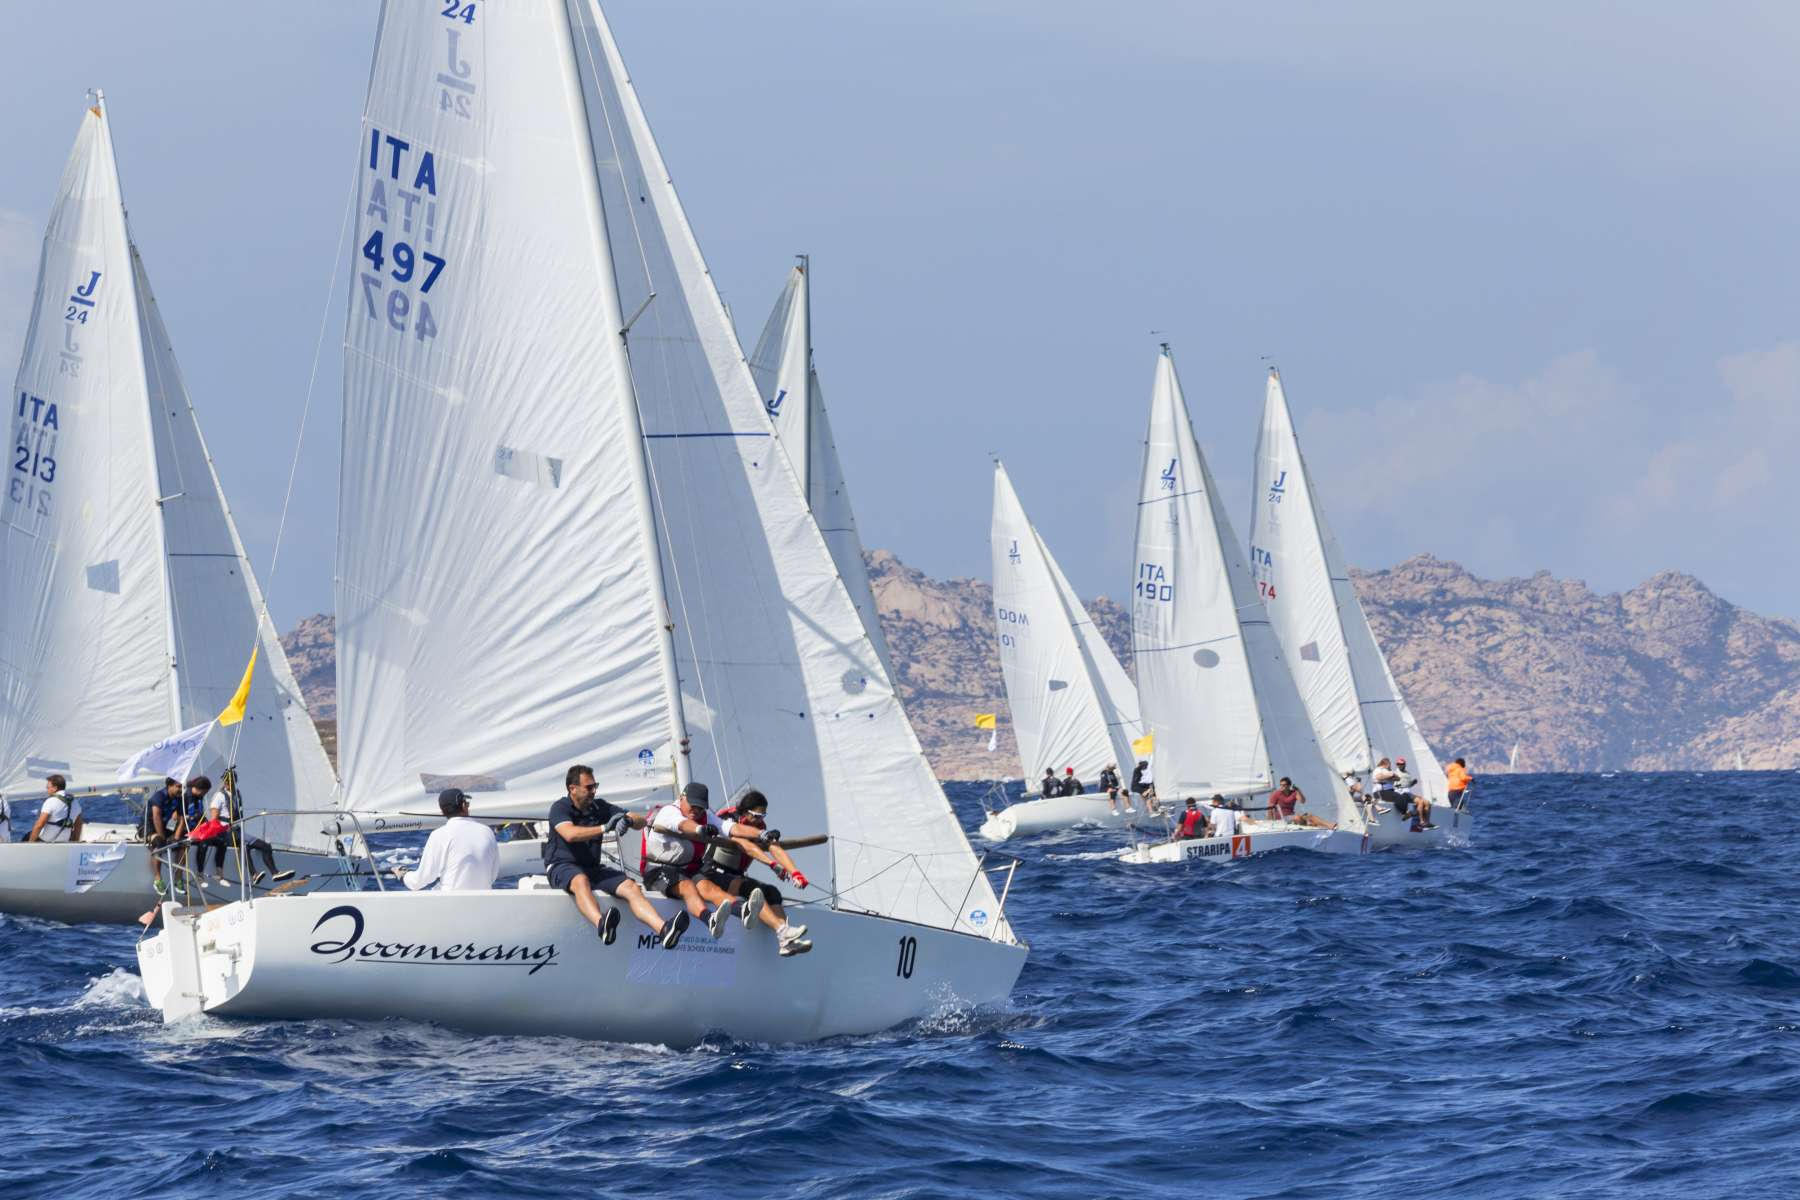 One Ocean MBA's Conference and Regatta - Porto Cervo 2019 - 2